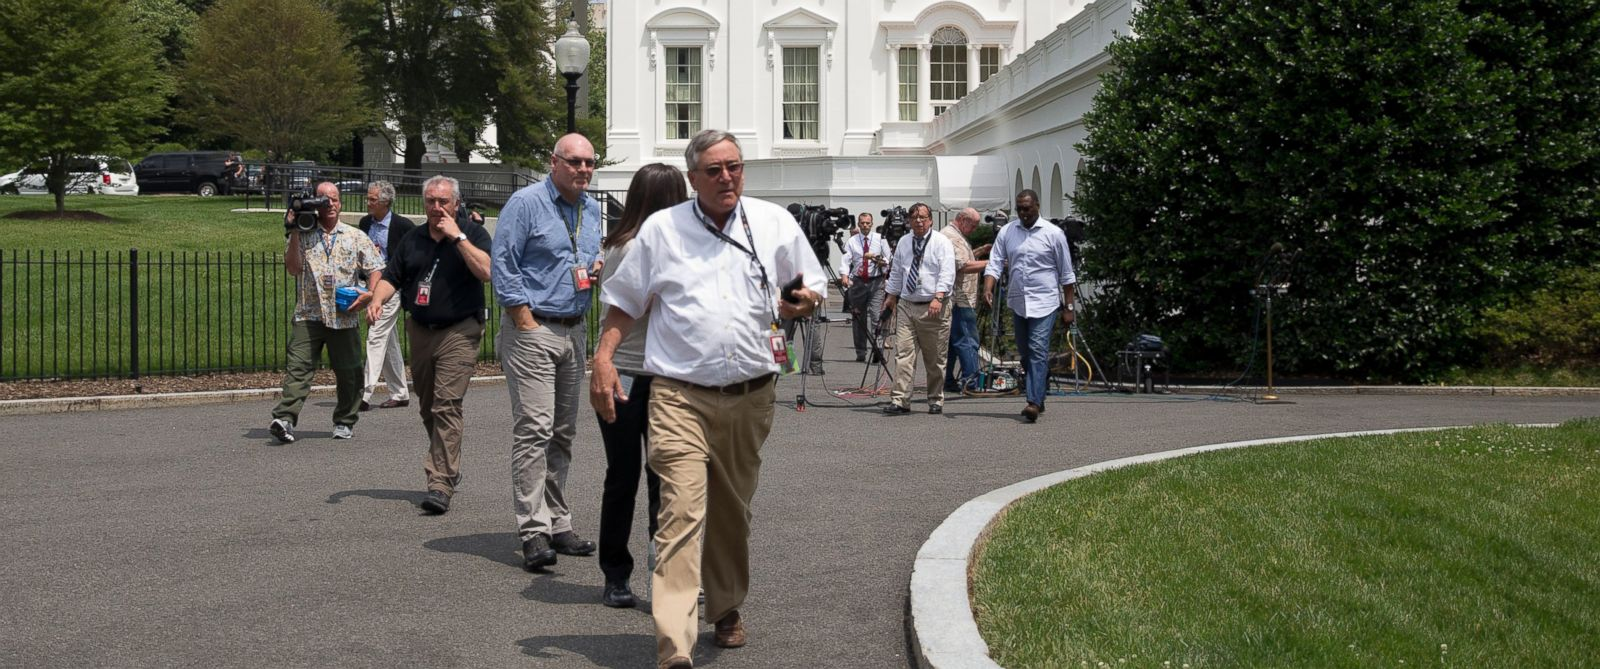 PHOTO: Members of the media and others are evacuated from the White House in Washington, June 9, 2015, amid security concerns.